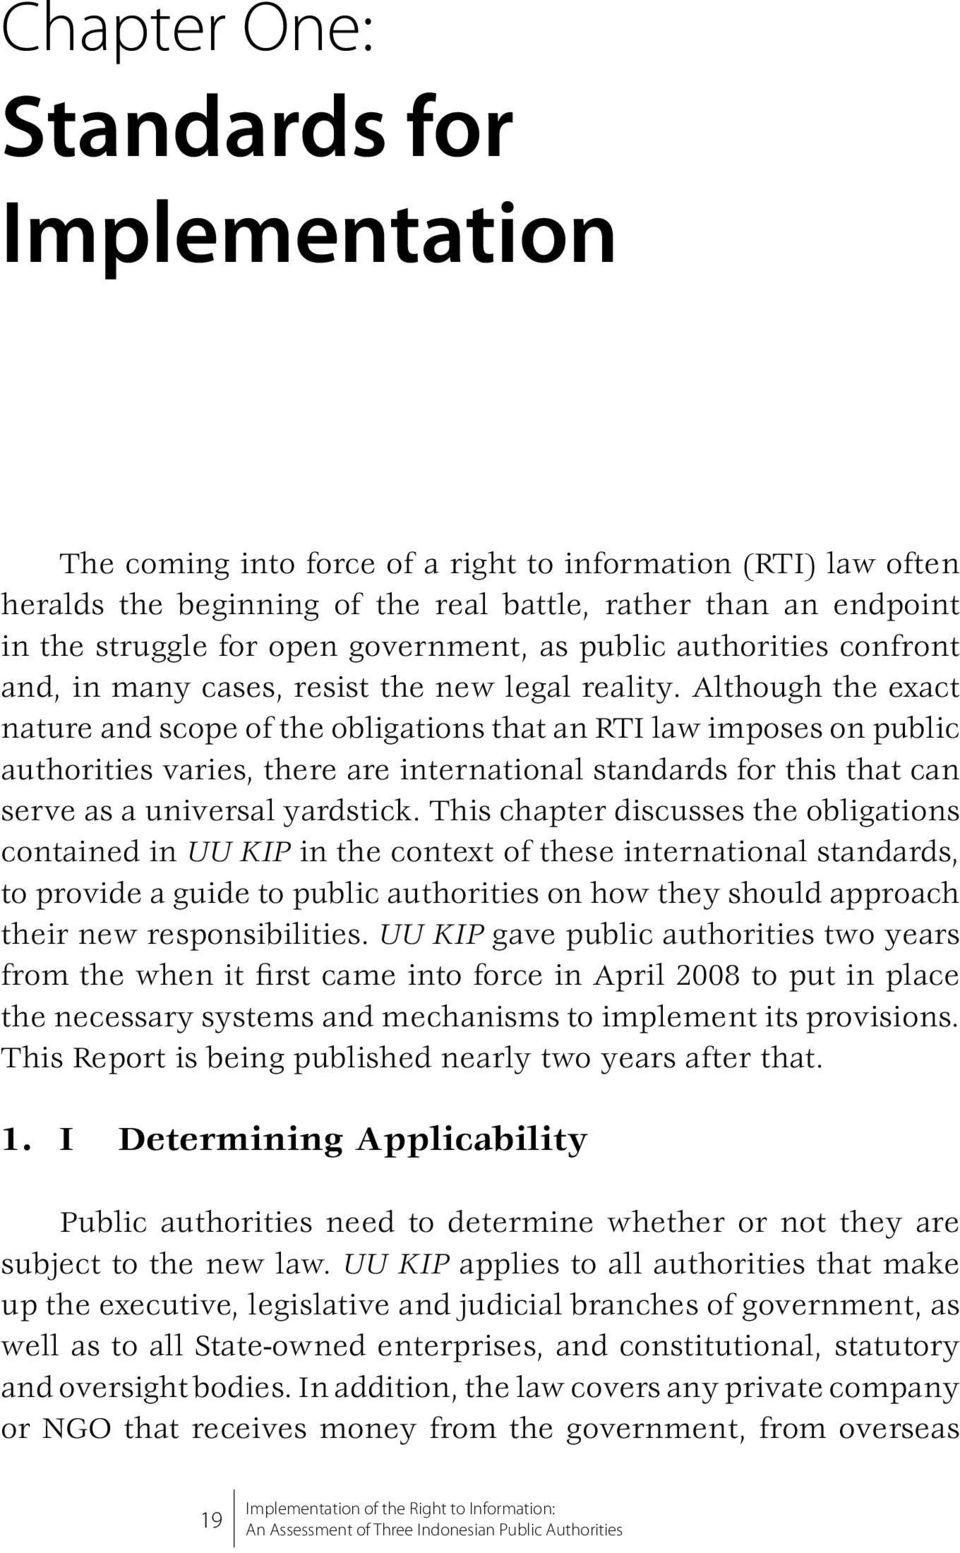 Although the exact nature and scope of the obligations that an RTI law imposes on public authorities varies, there are international standards for this that can serve as a universal yardstick.